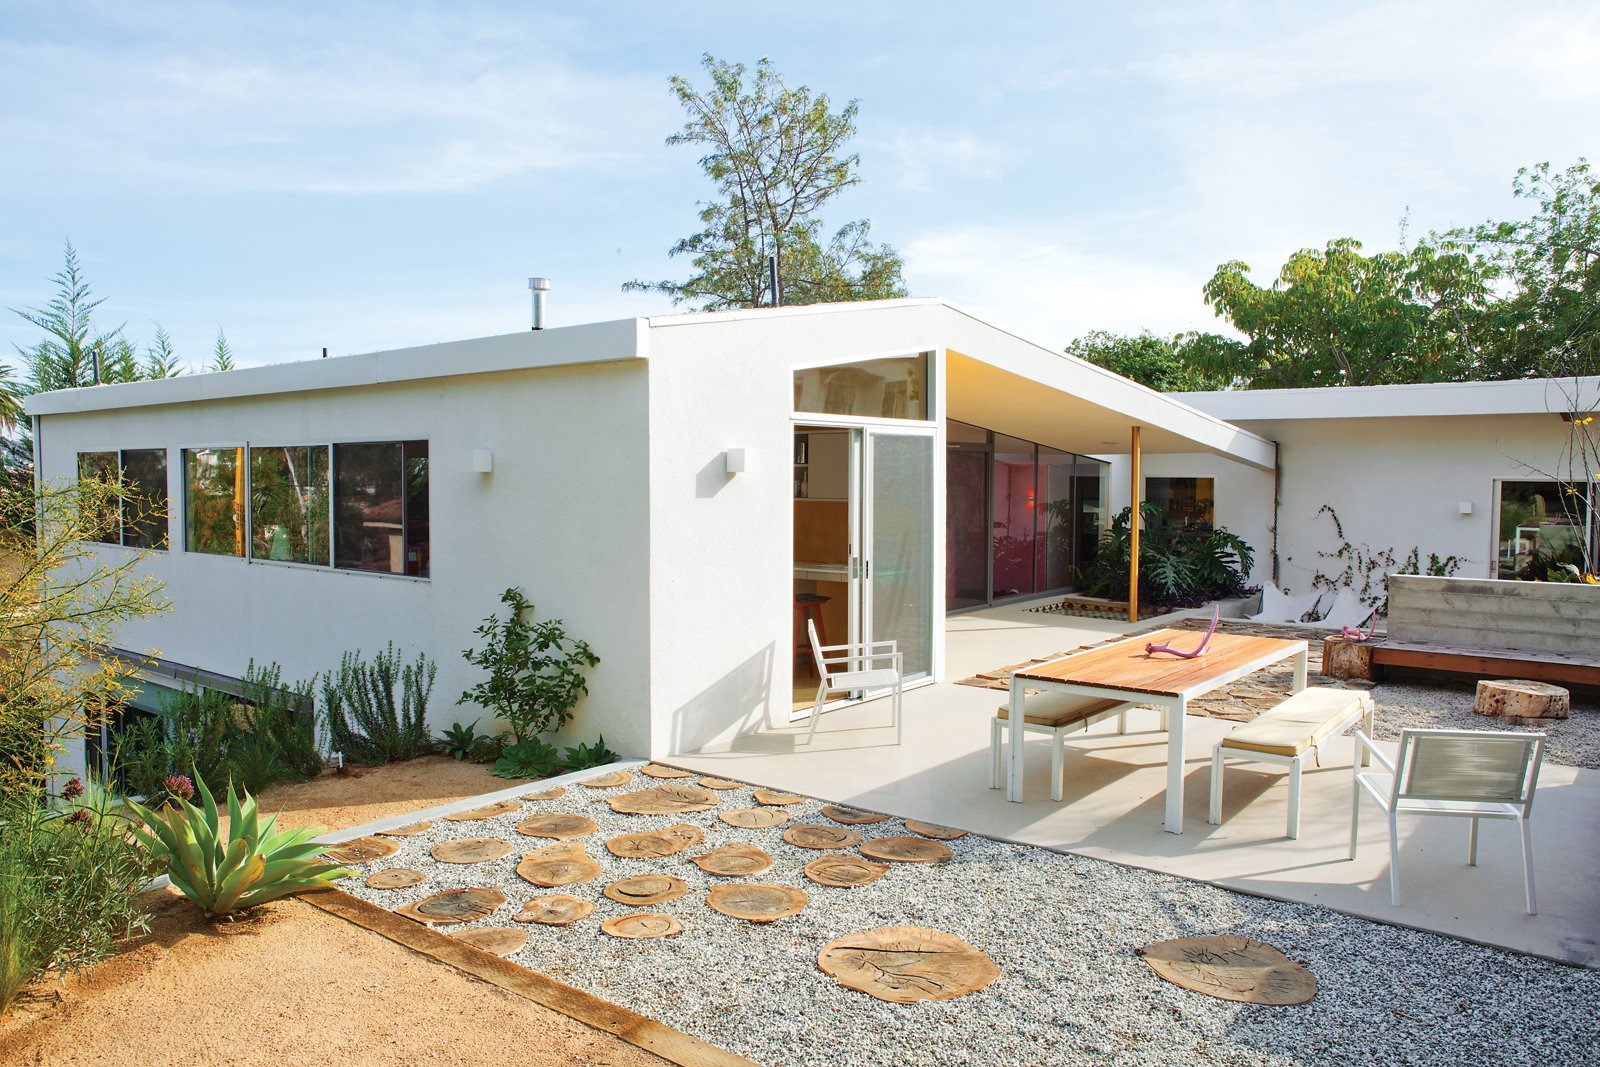 Some 35 percent of the materials from the renovation were resurrected in the yard: Redwood panels became fencing. Blocks cut from original concrete patios form the snake wall. And Purdy plans to crochet colorful cozies over various branches and stumps.  Photo 12 of 13 in A Fresh Dose of Color Livens Up This Midcentury Los Angeles Home